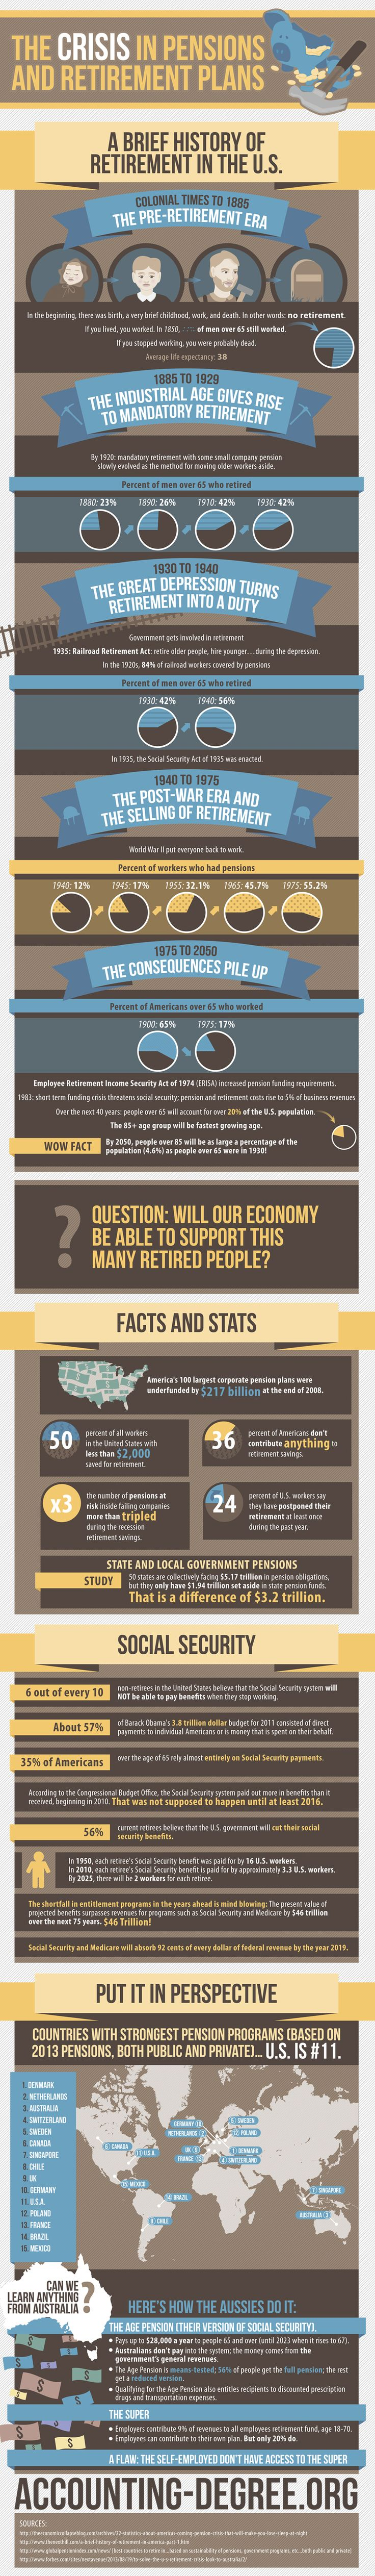 The Crisis In Pensions And Retirement Plans [INFOGRAPHIC] #pensions #retirementplans